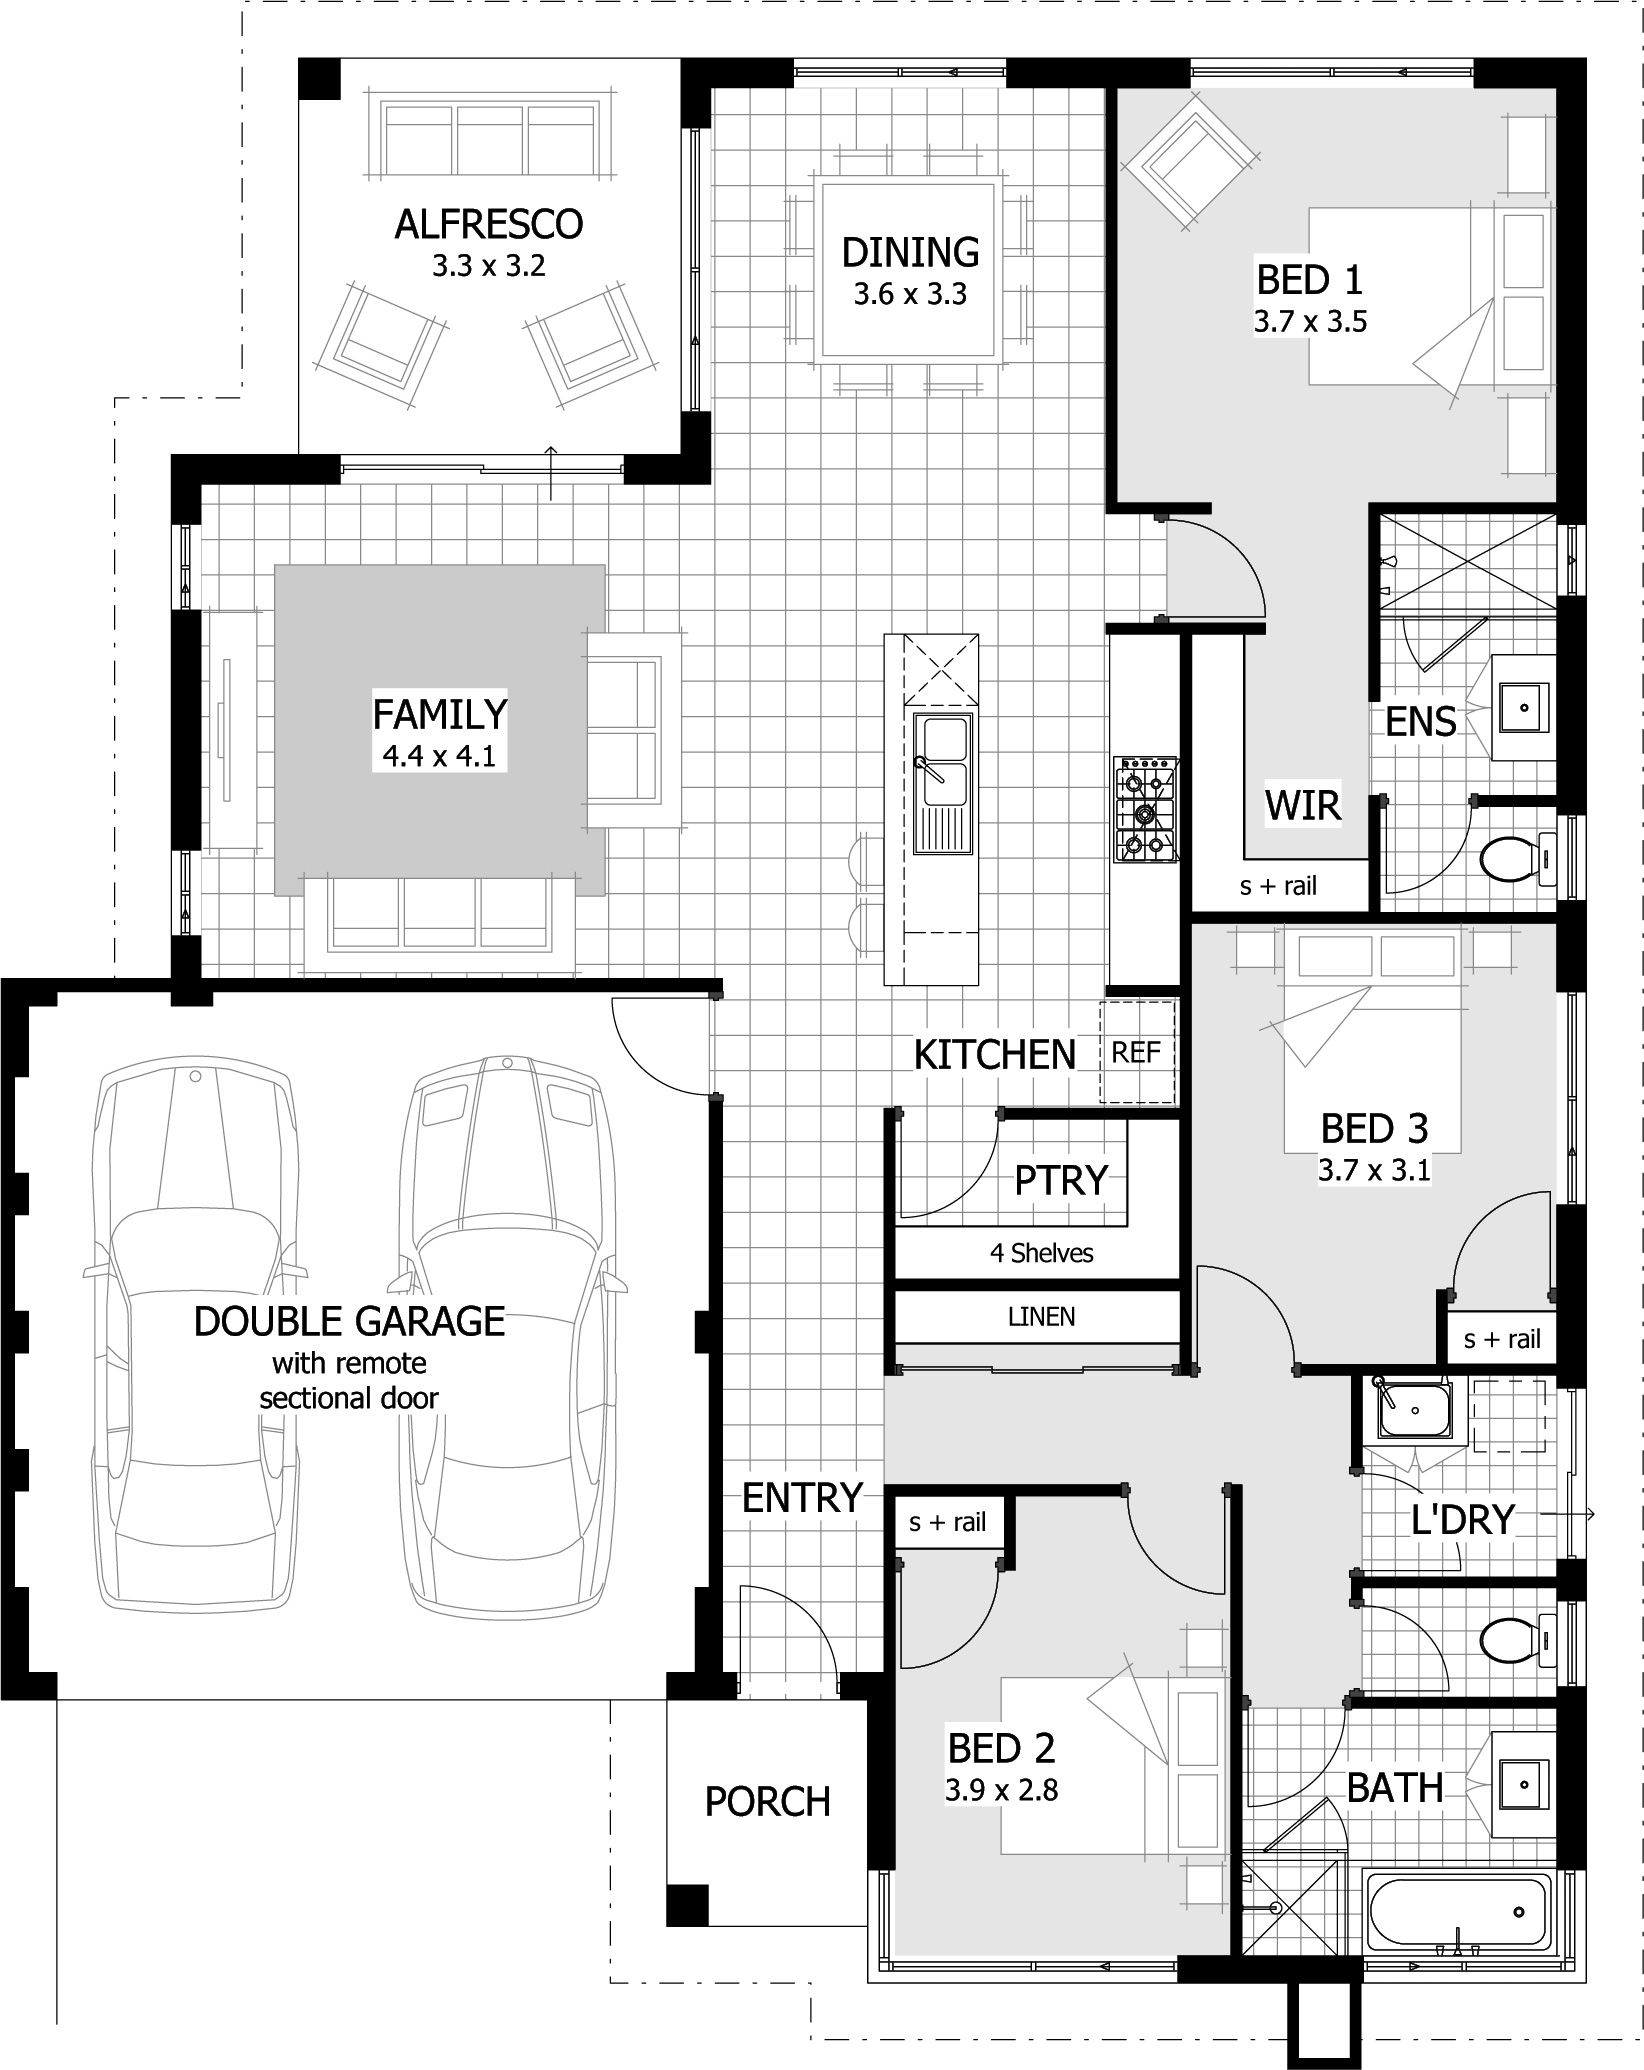 3 Bedroom House Plans Home Designs Beautiful House Plans